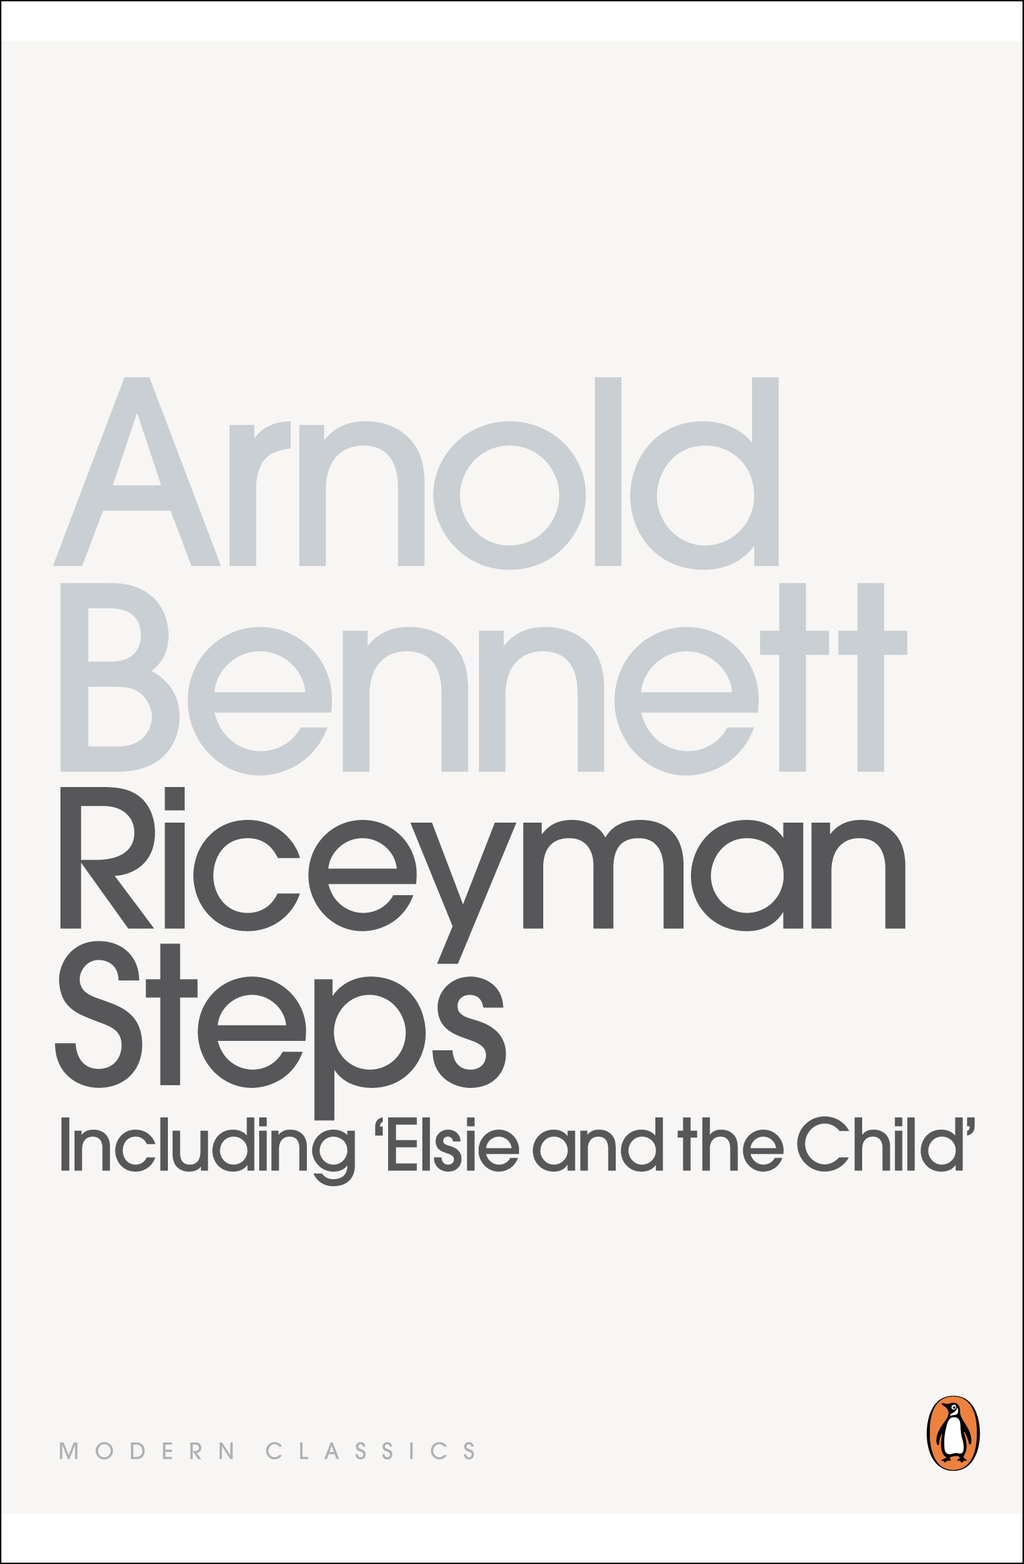 Riceyman Steps(Including 'Elsie And the Child') By: Arnold Bennett,Edward Mendelson